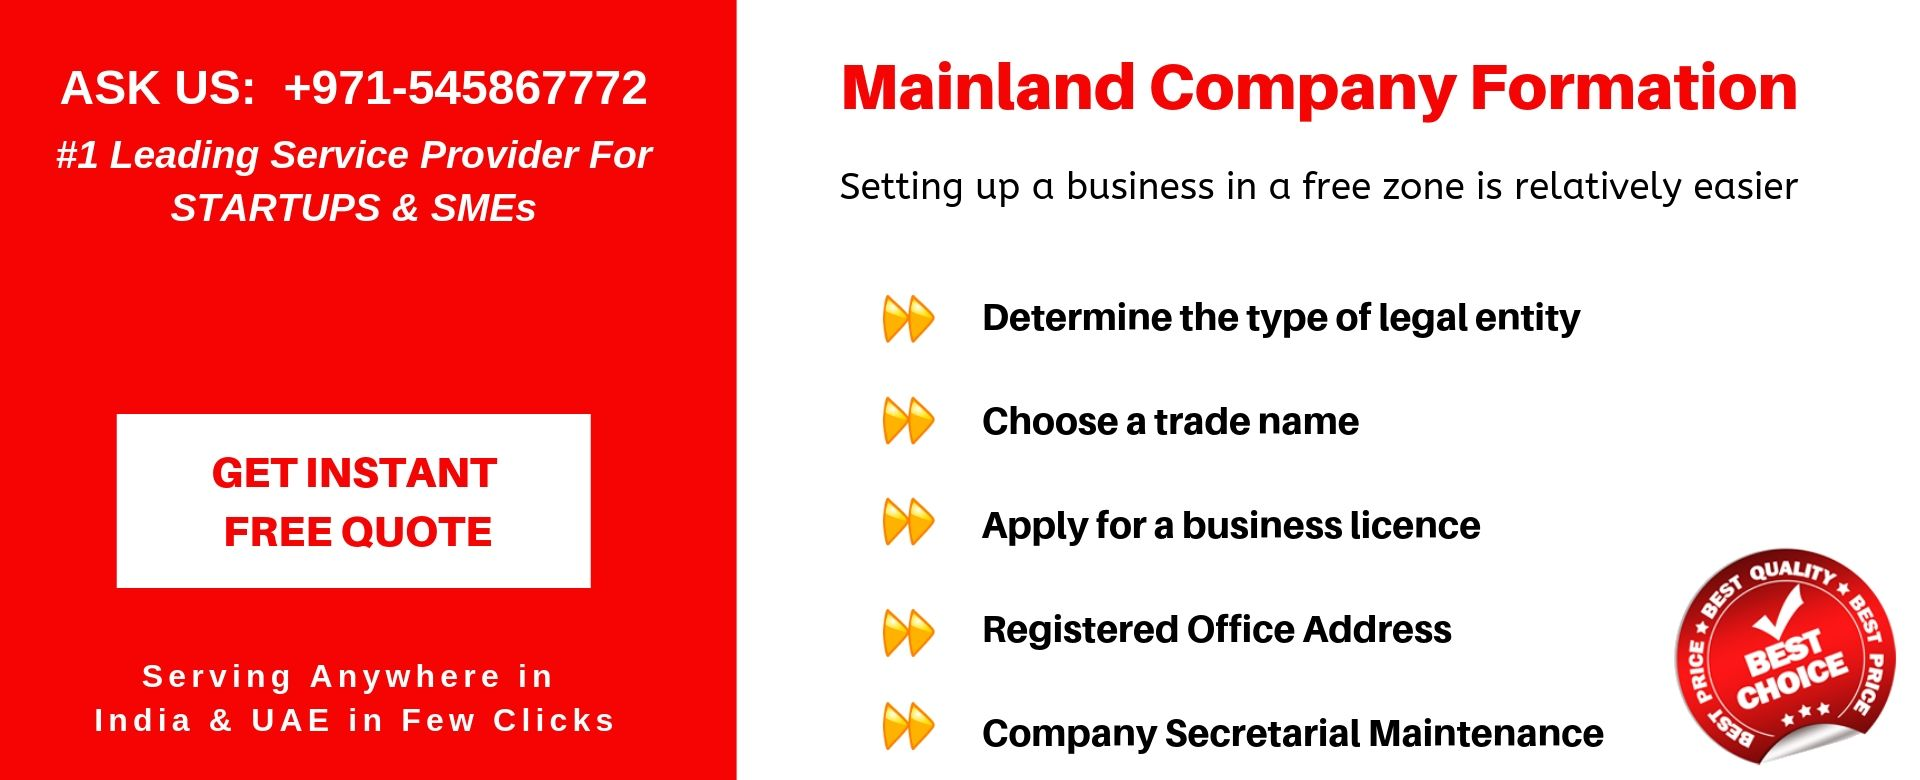 mainland company formation in uae